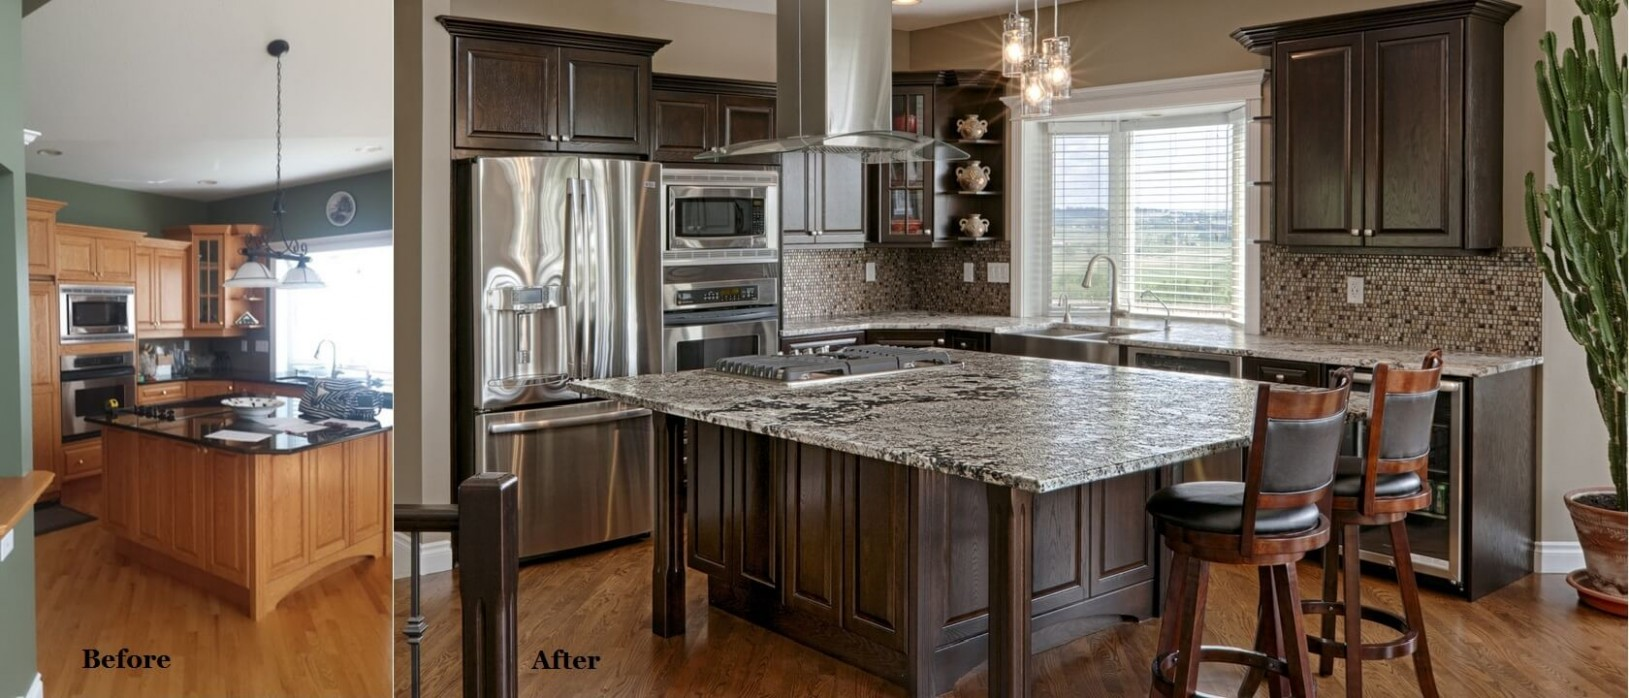 Best Kitchen Cabinet Painting & Refinishing In Calgary - Kitchen Cabinets Refinishing Services